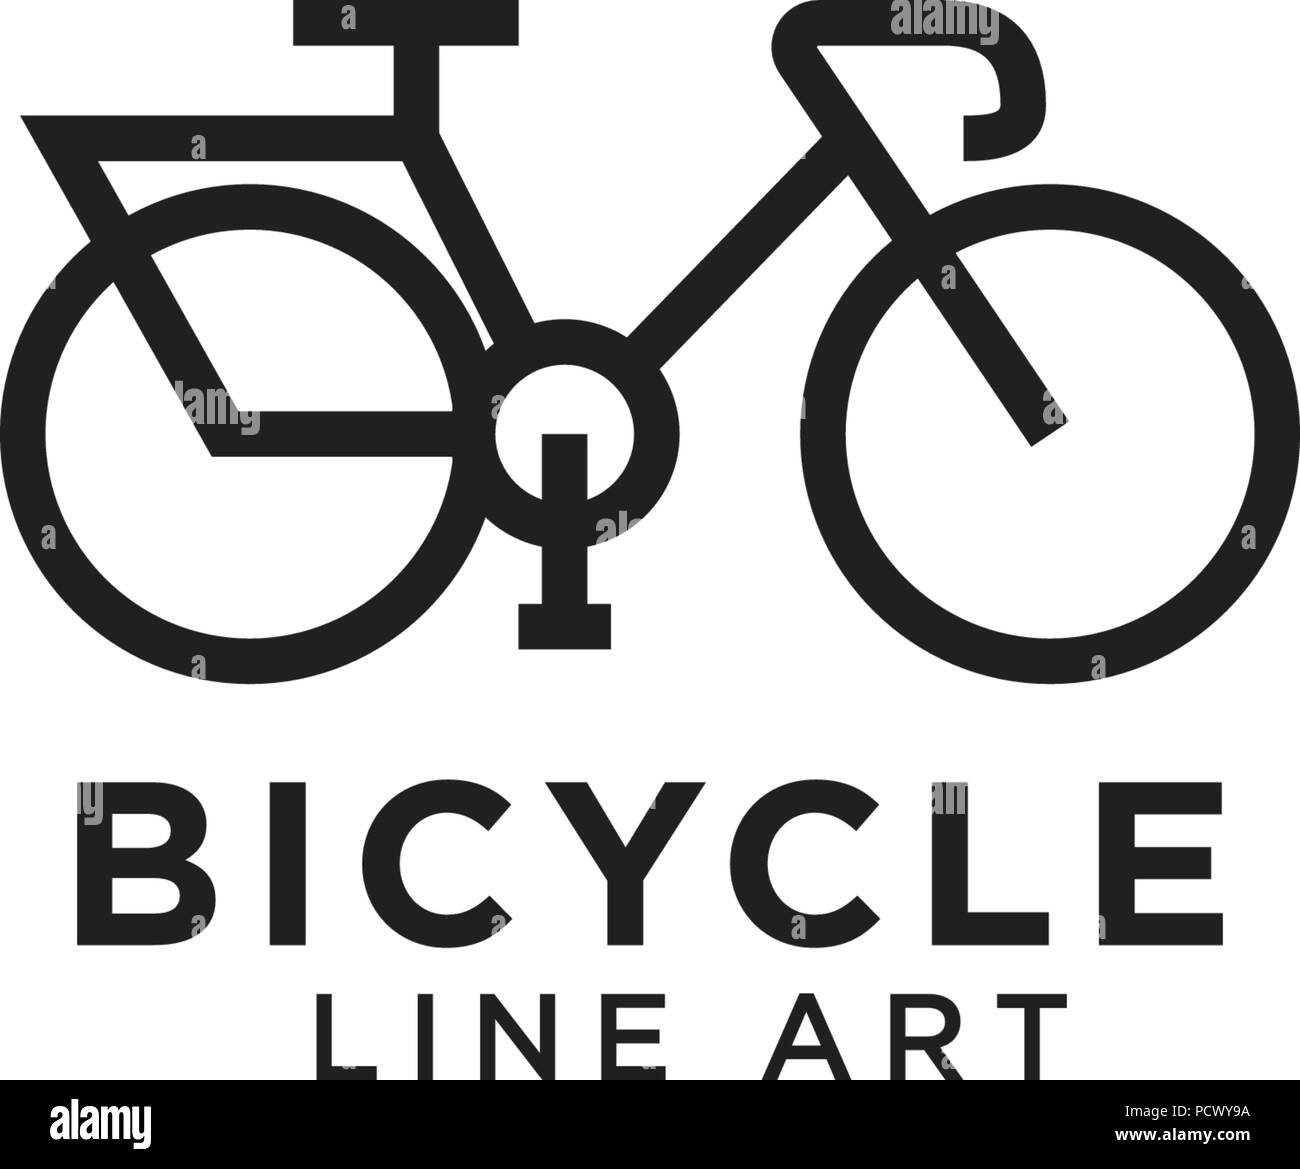 illustration of bicycle line art logo design template stock vector